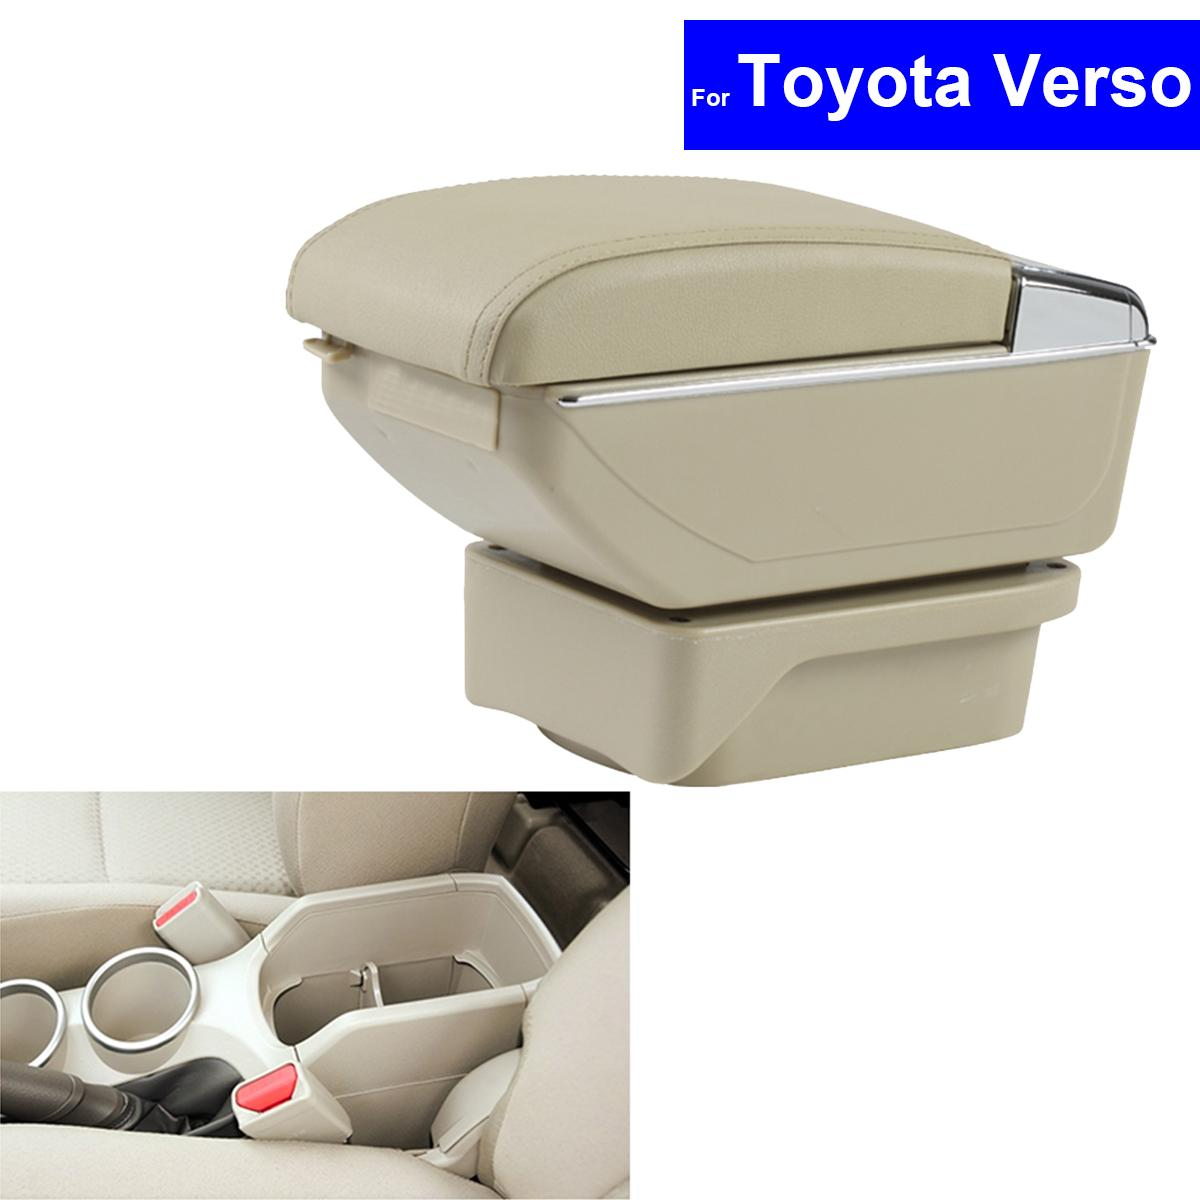 hight resolution of leather car center console armrest storage box for toyota verso 2011 2012 2013 2014 2015 armrests auto interior accessories for cars interior accessories